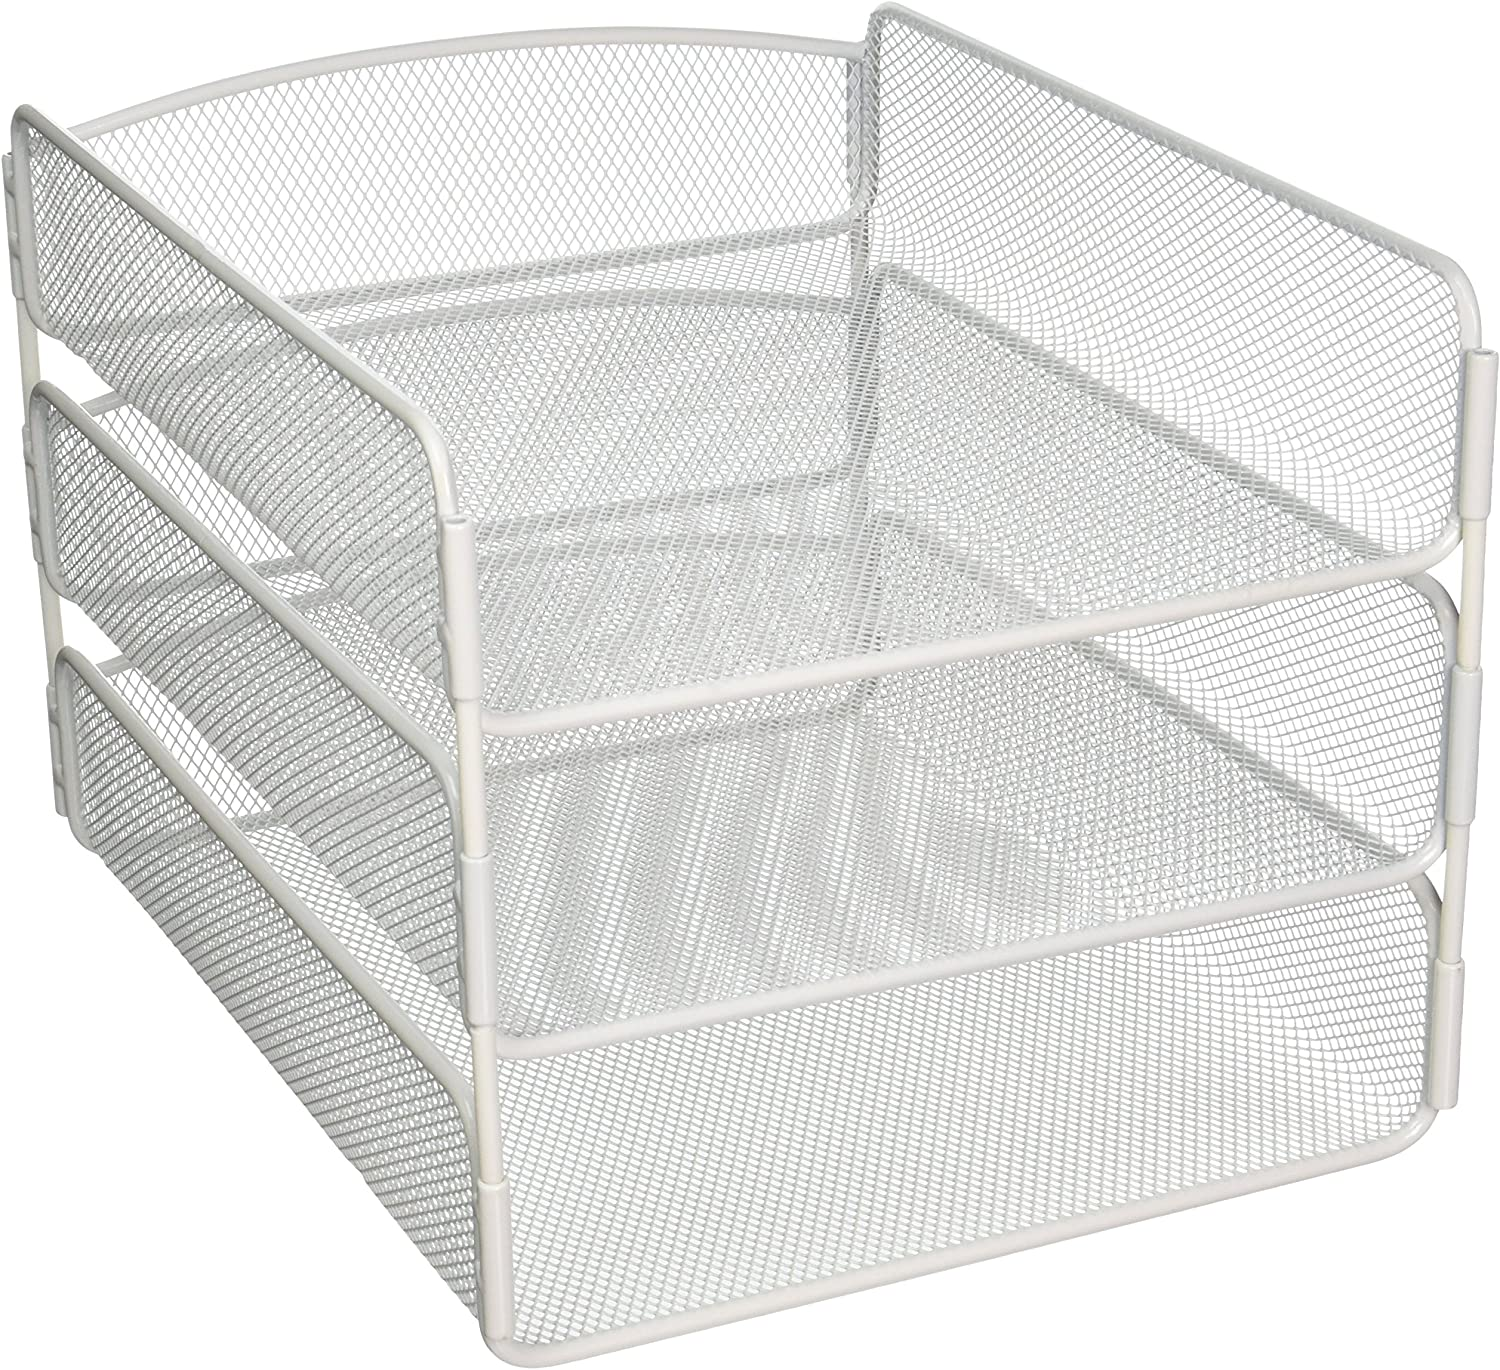 Safco Products Onyx Mesh 3 Tray Desktop Organizer 3271WH, White Powder Coat Finish, Durable Steel Mesh Construction